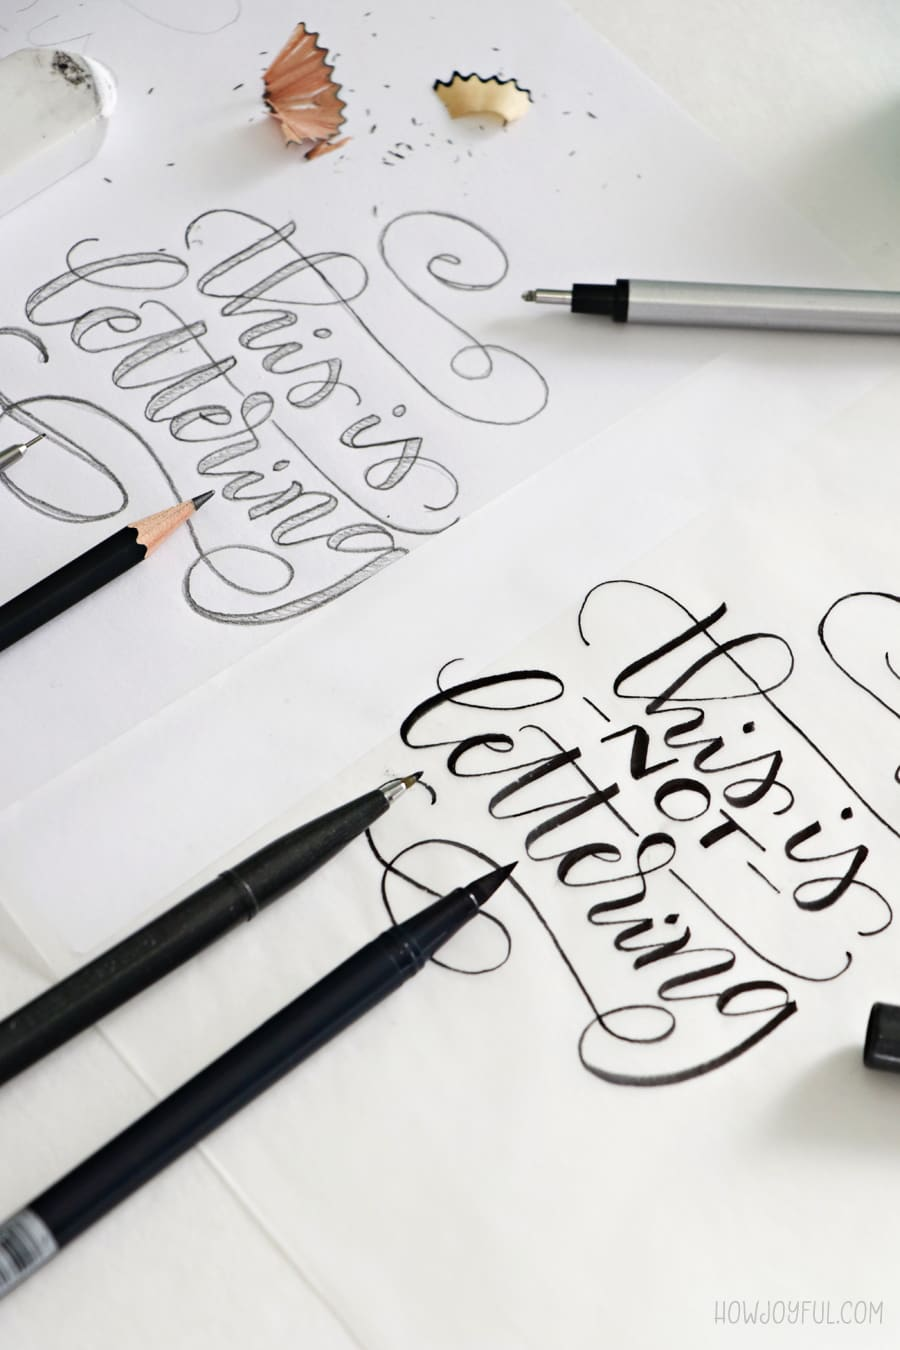 Examples of the difference between lettering and brush calligraphy